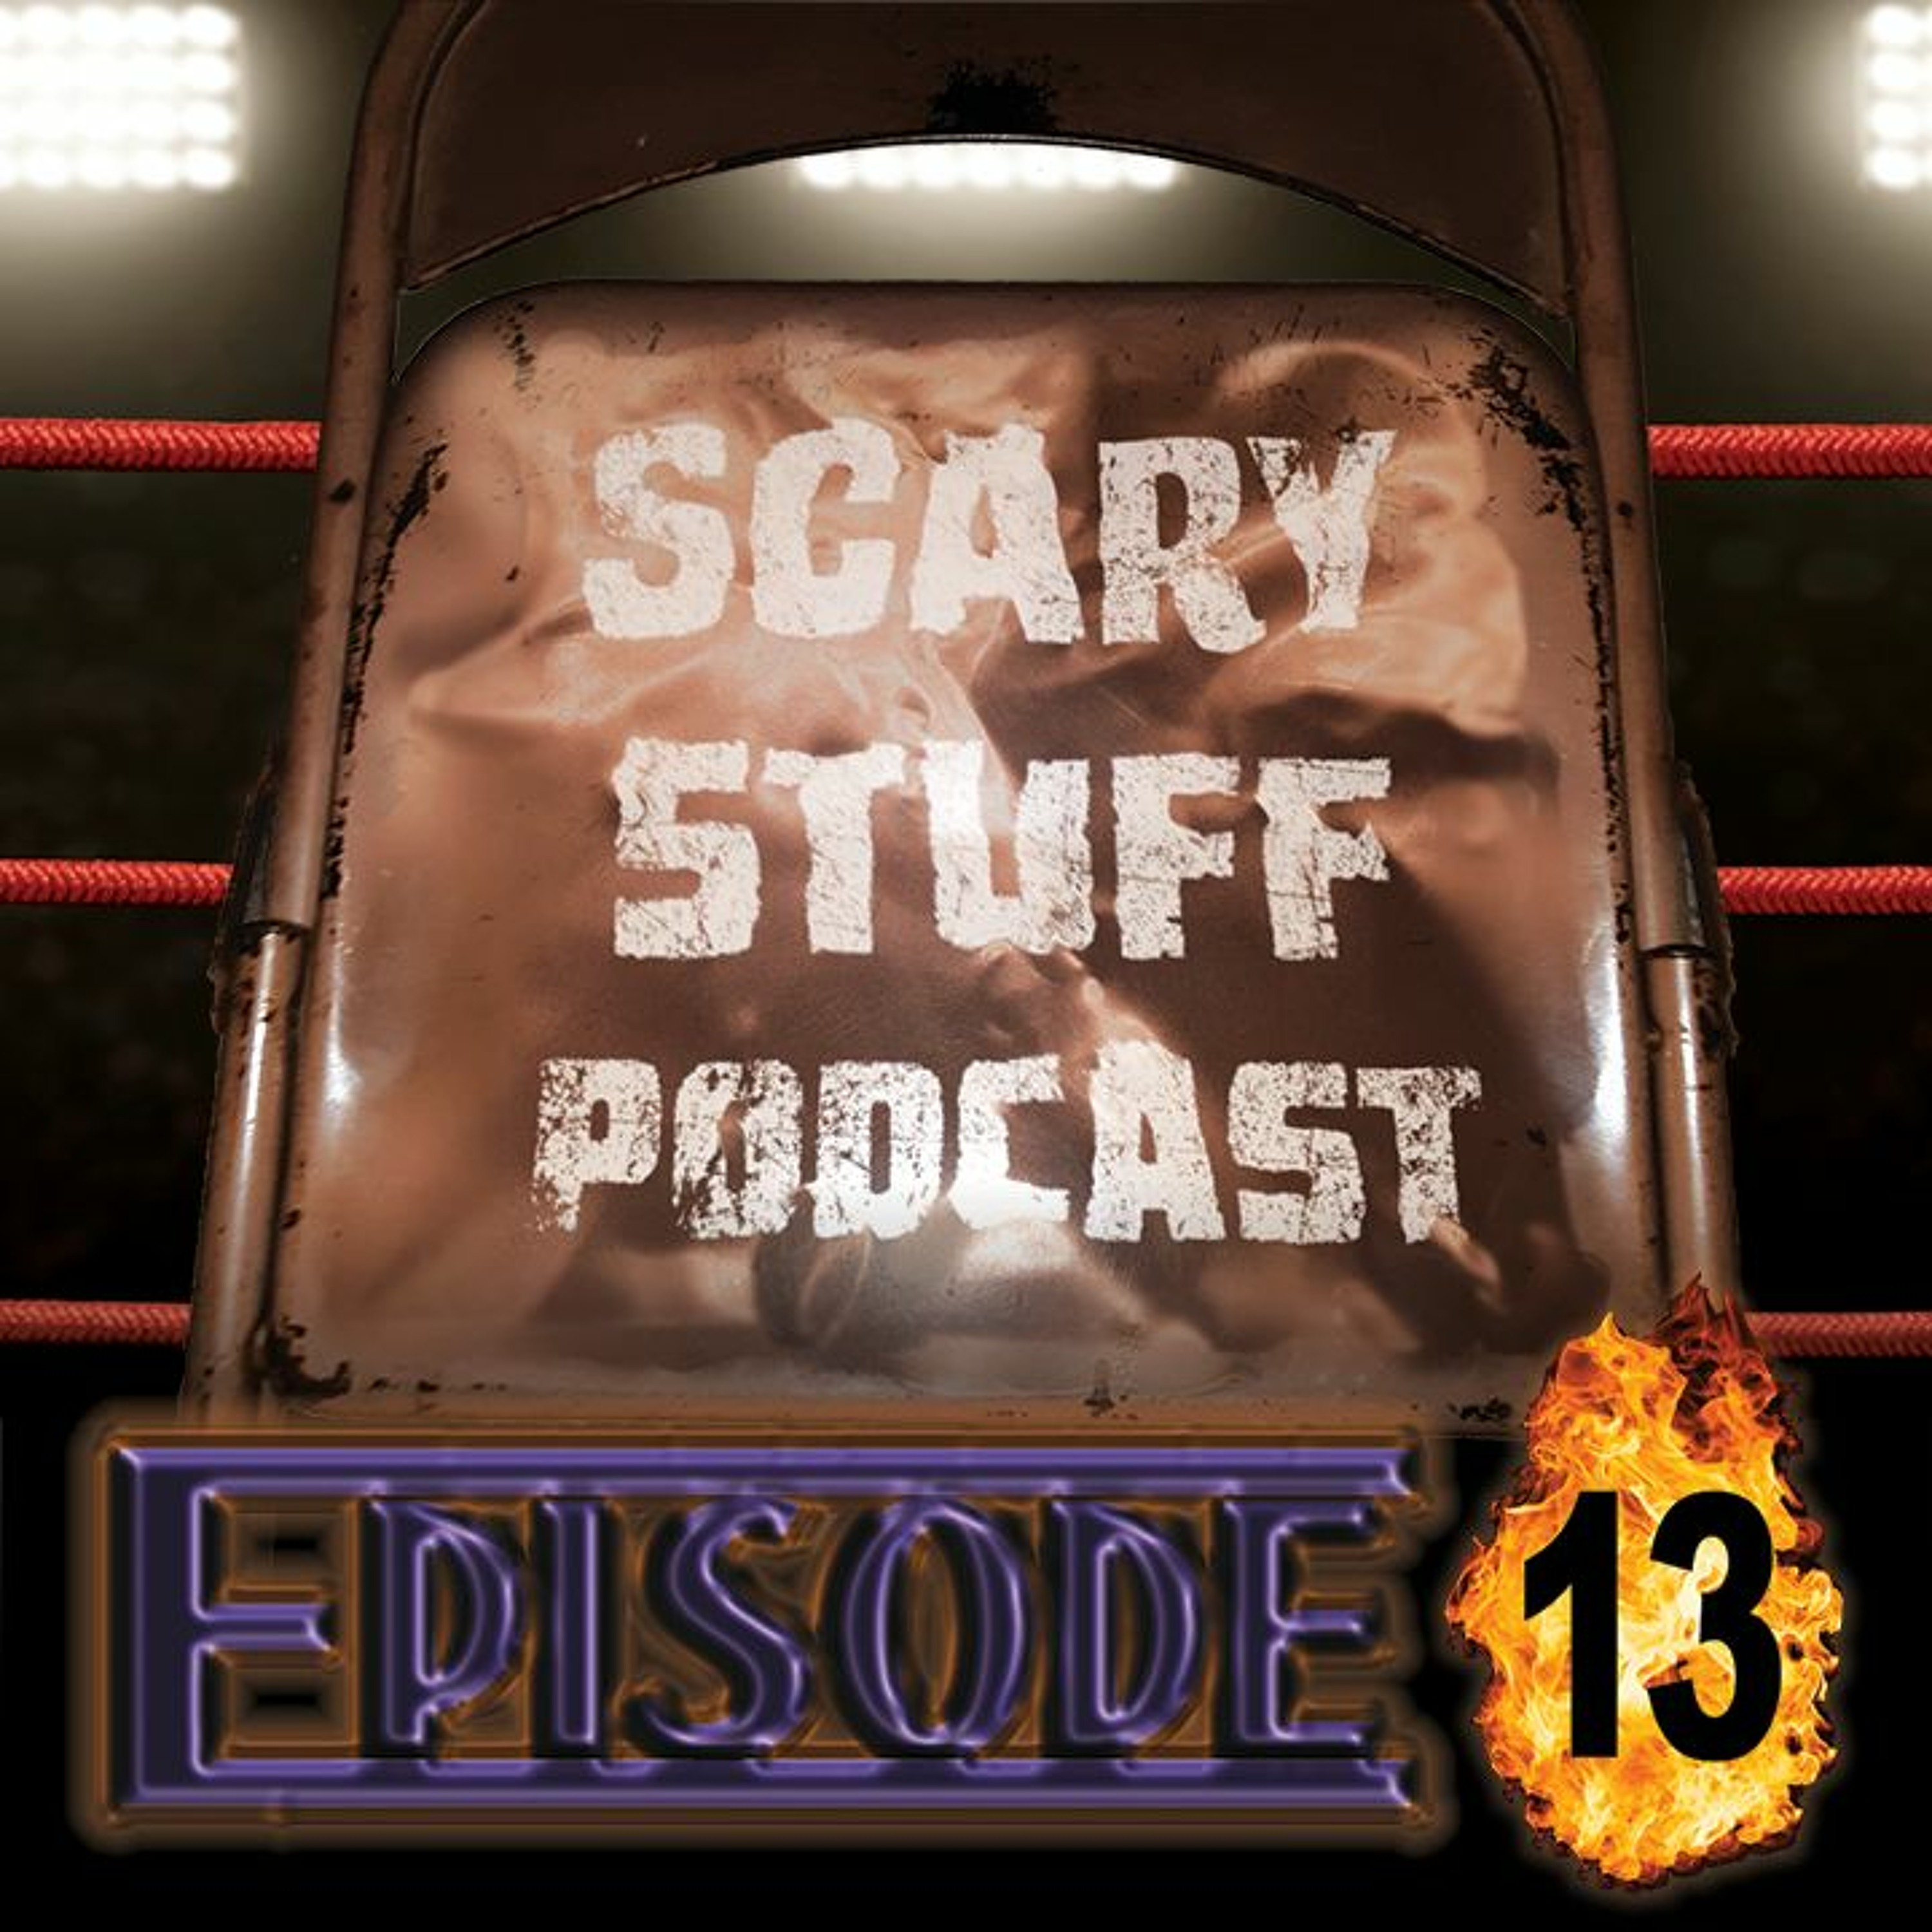 Episode 13: Wretched Rumble (Wrestlers in Horror Movies)